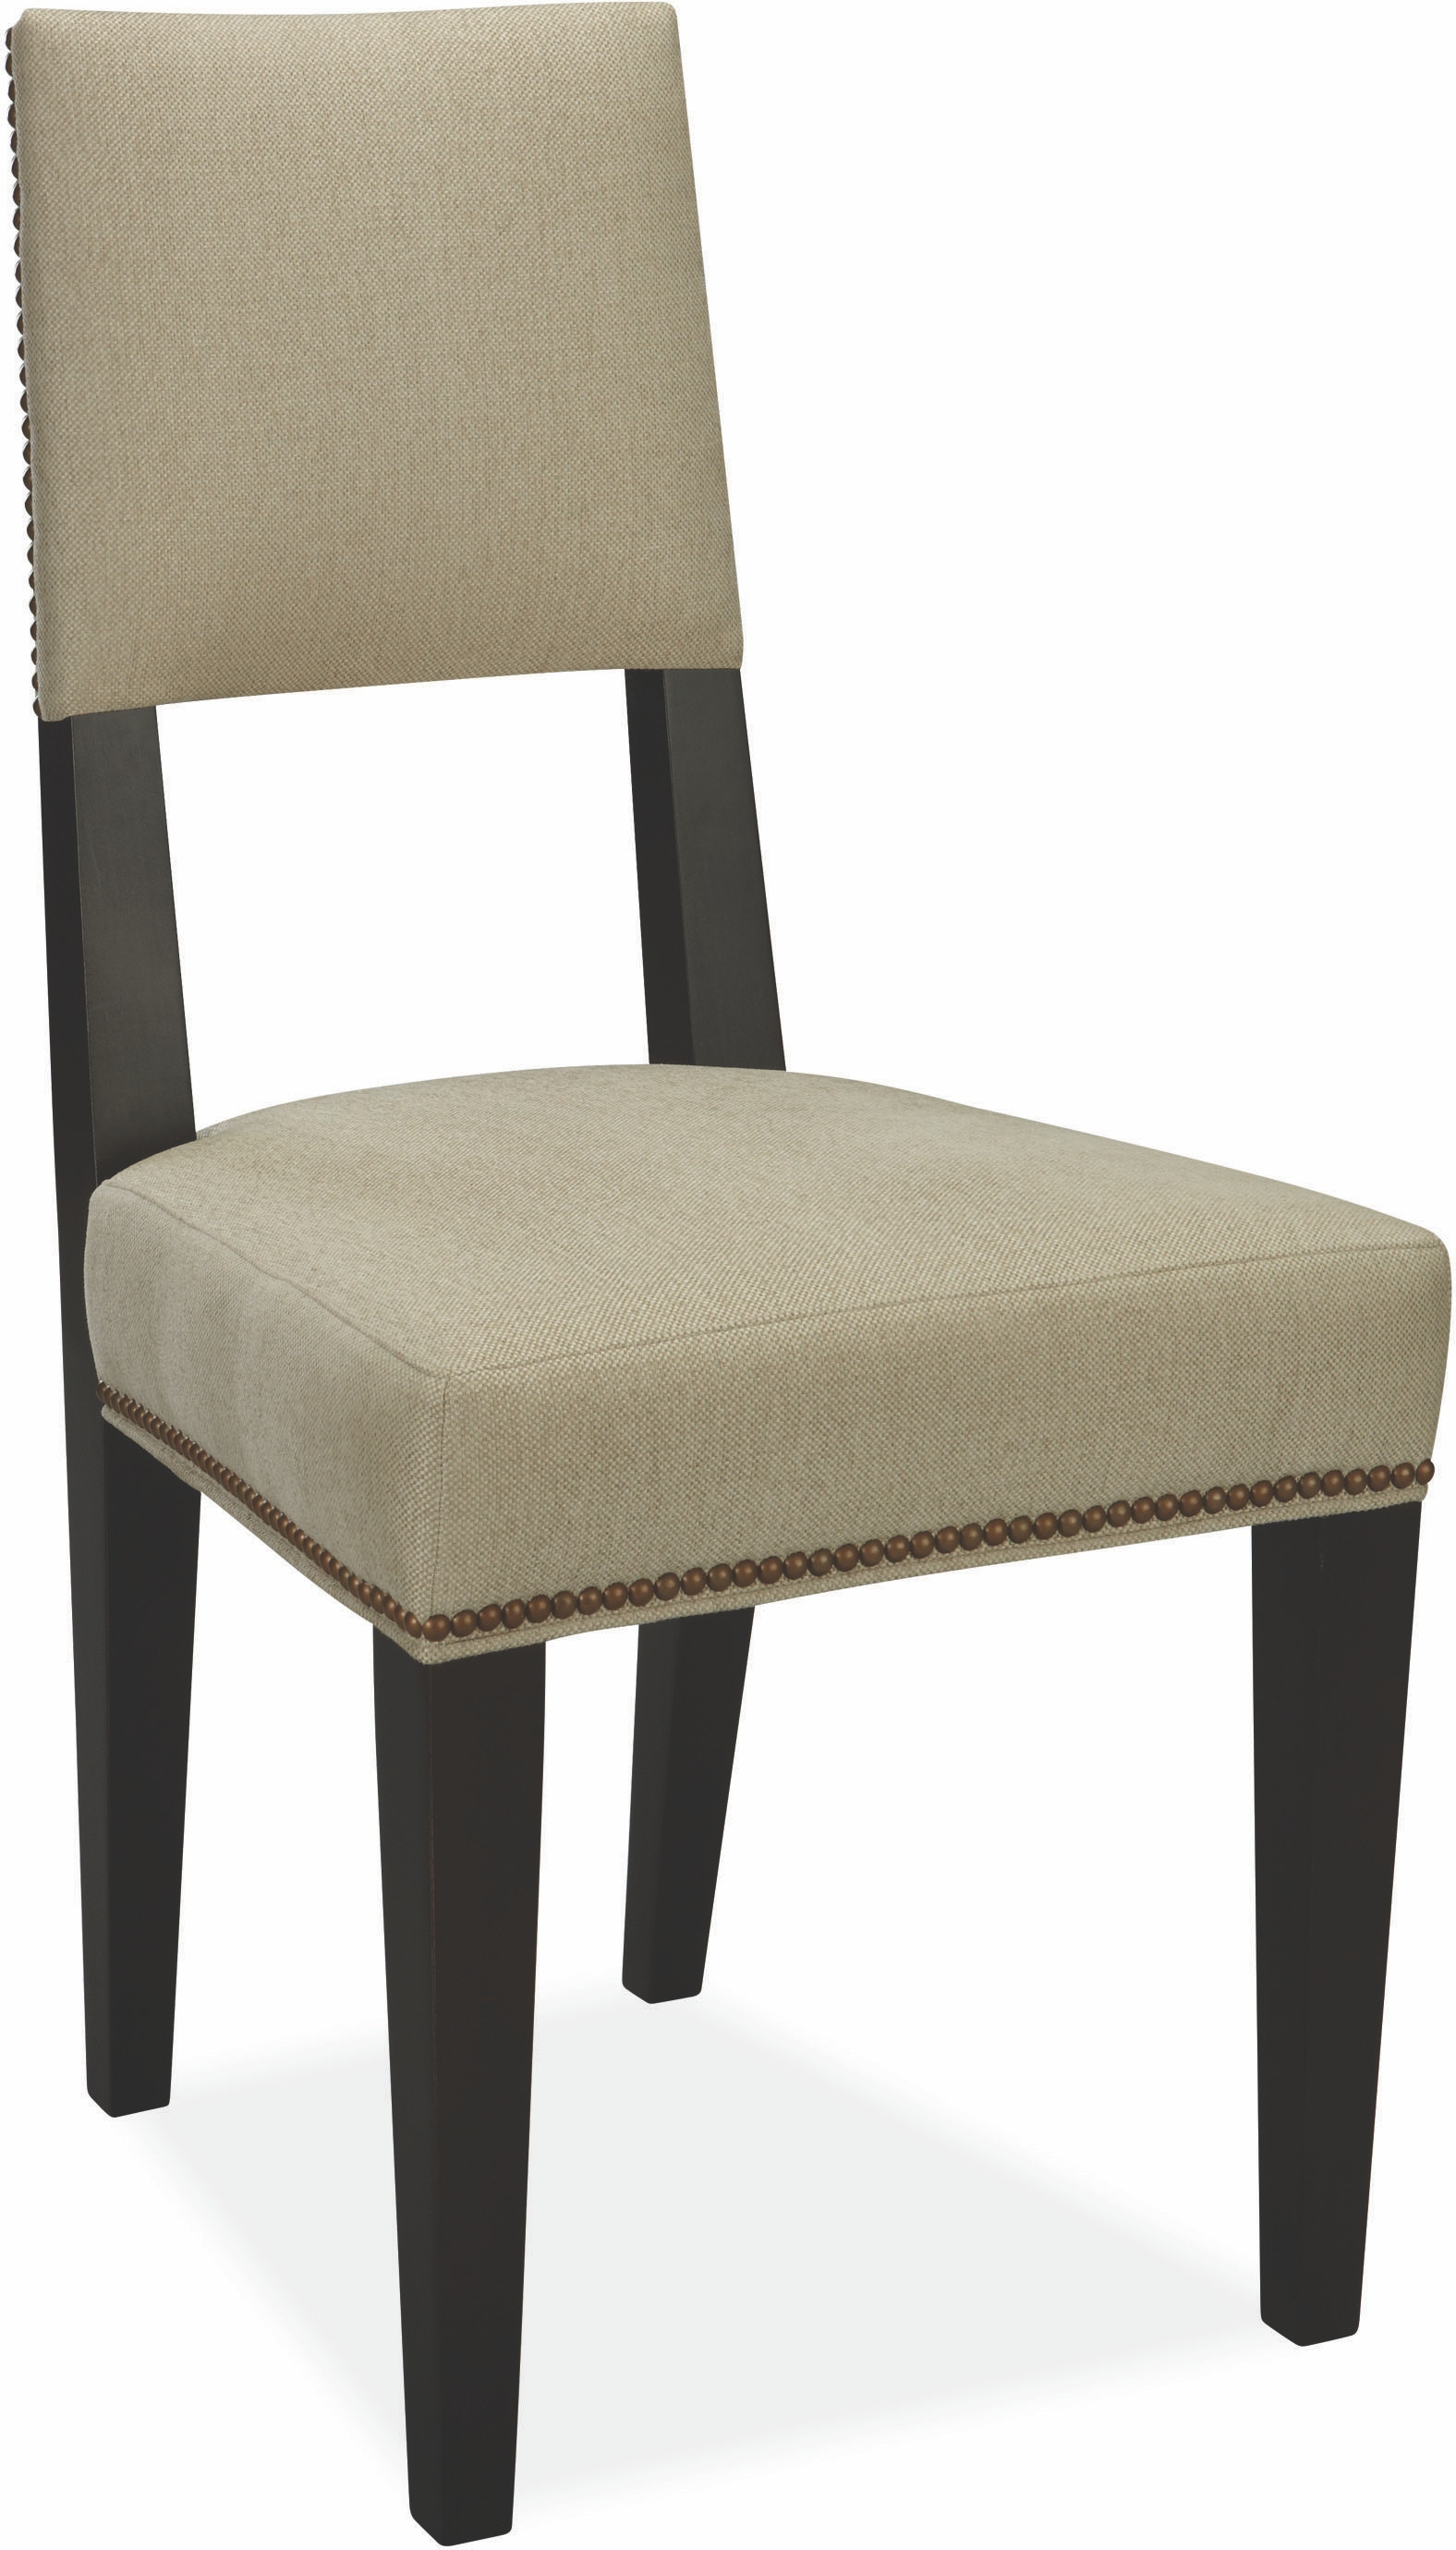 Lee Industries Dining Room Dining Chair 5573 01 R W